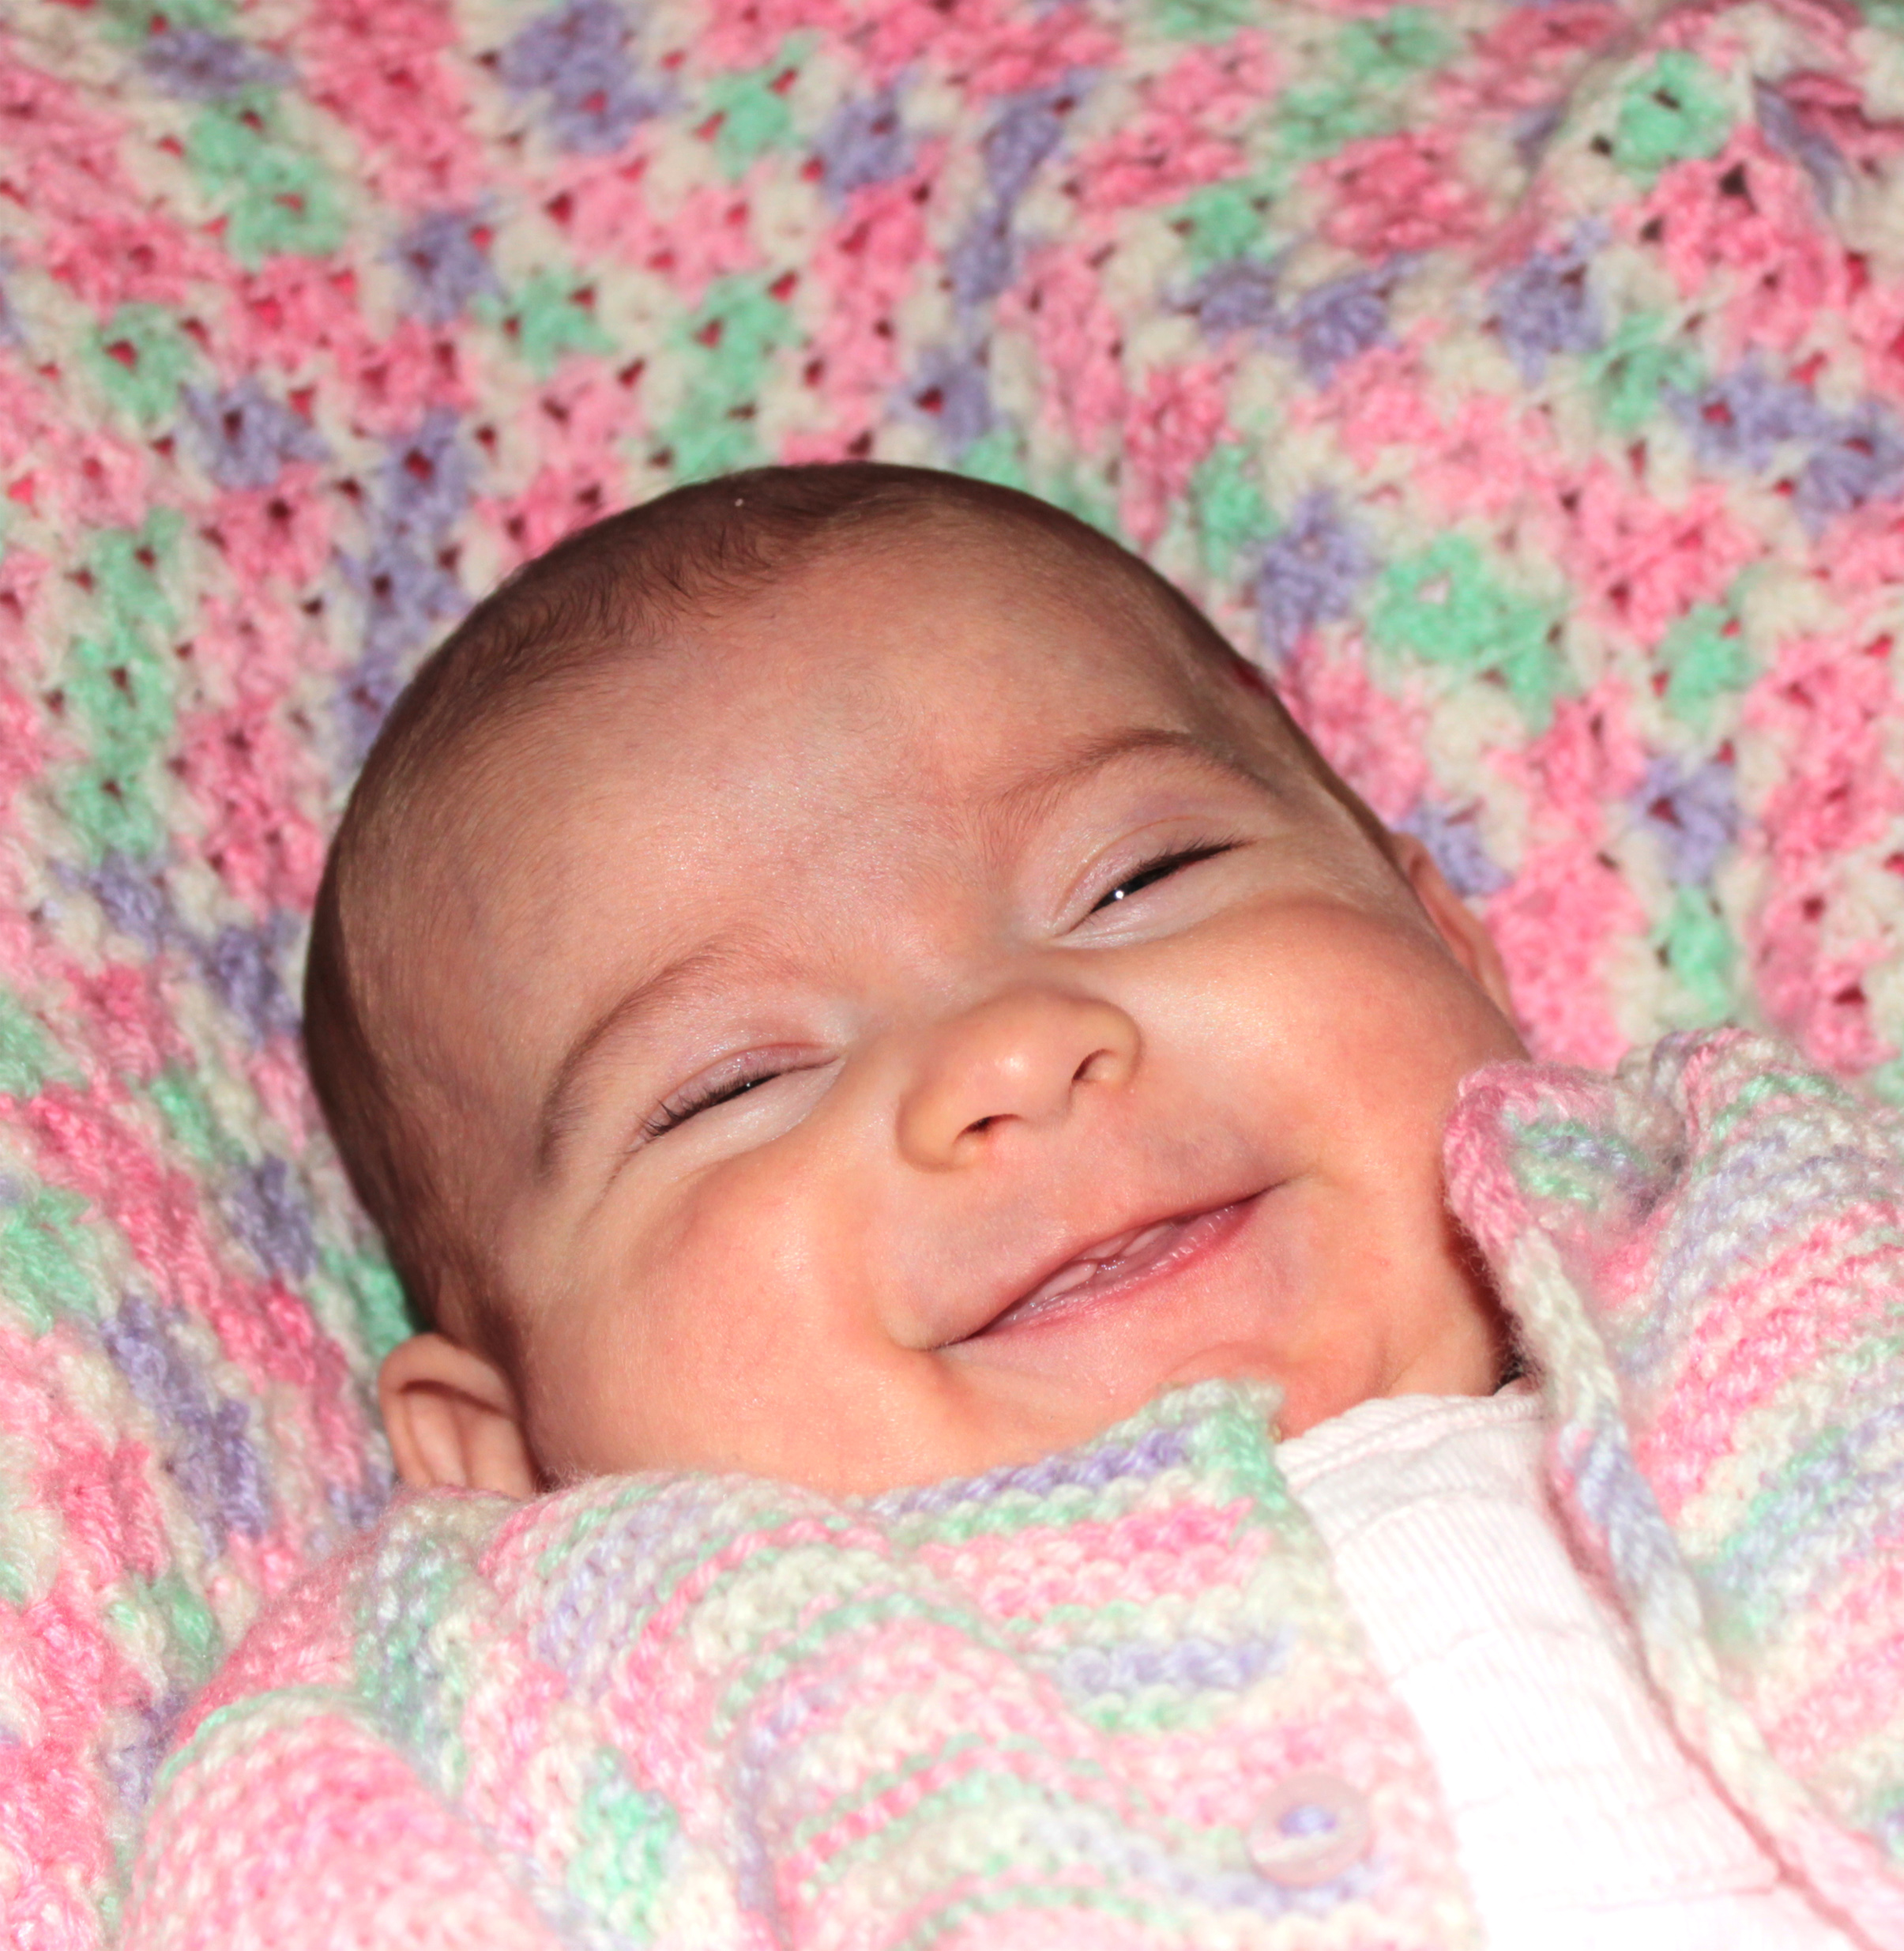 Portrait of a happy baby smiling, One, House, Indoors, Infant, HQ Photo